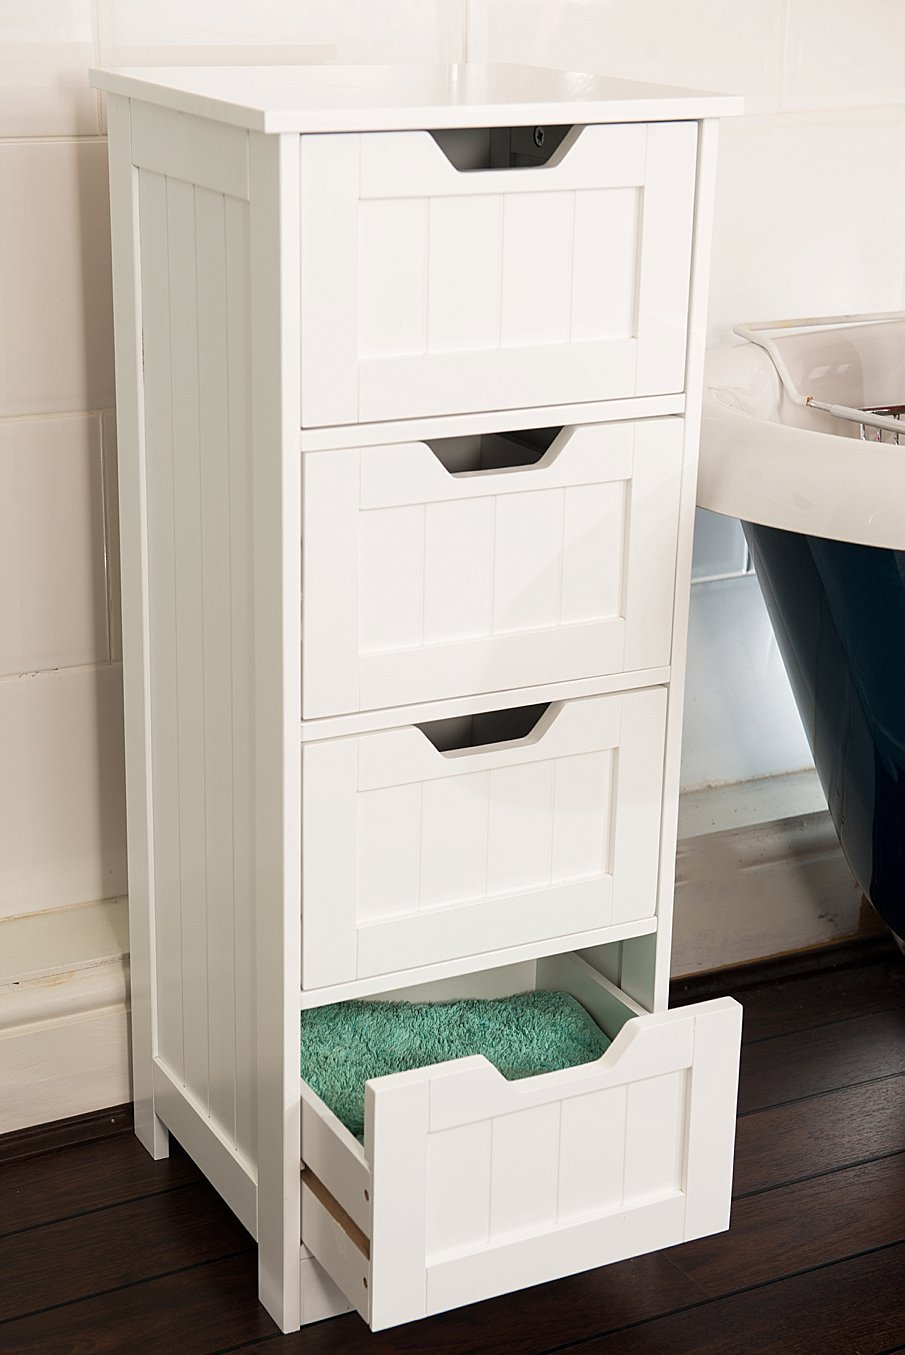 Image of: Cabinet with Drawer Organizer